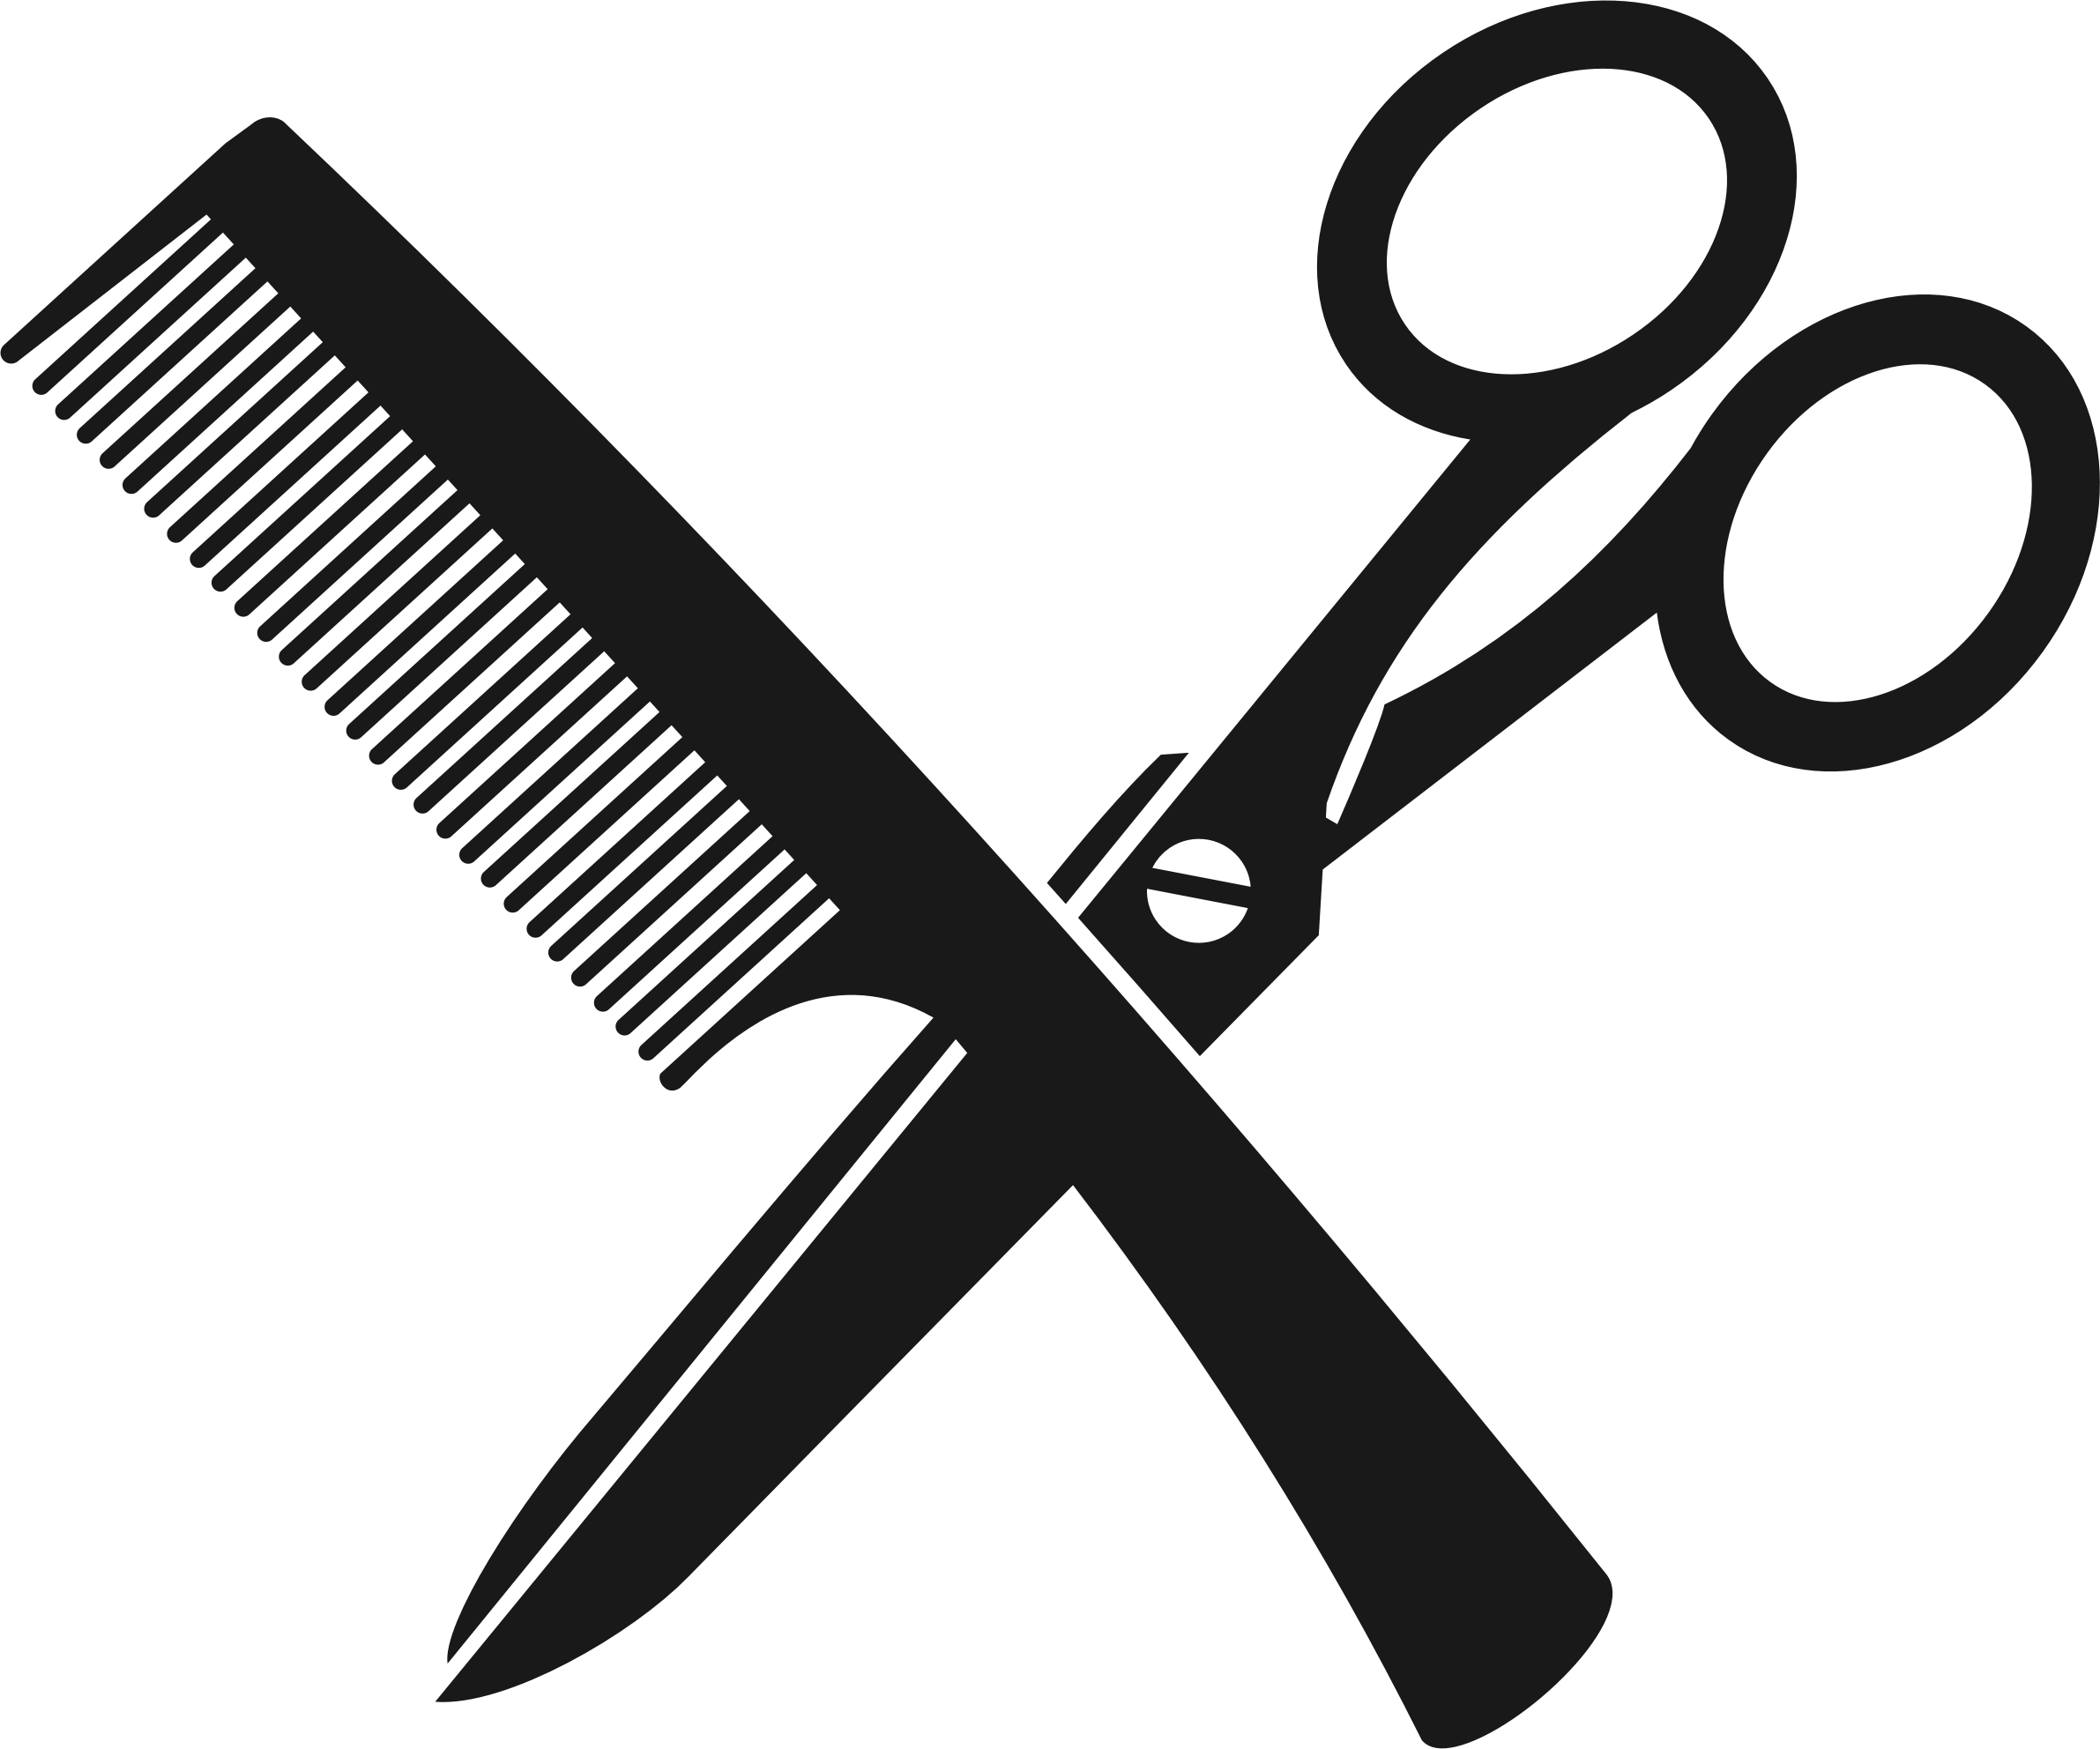 Scissor and comb clip art clipart images gallery for free.